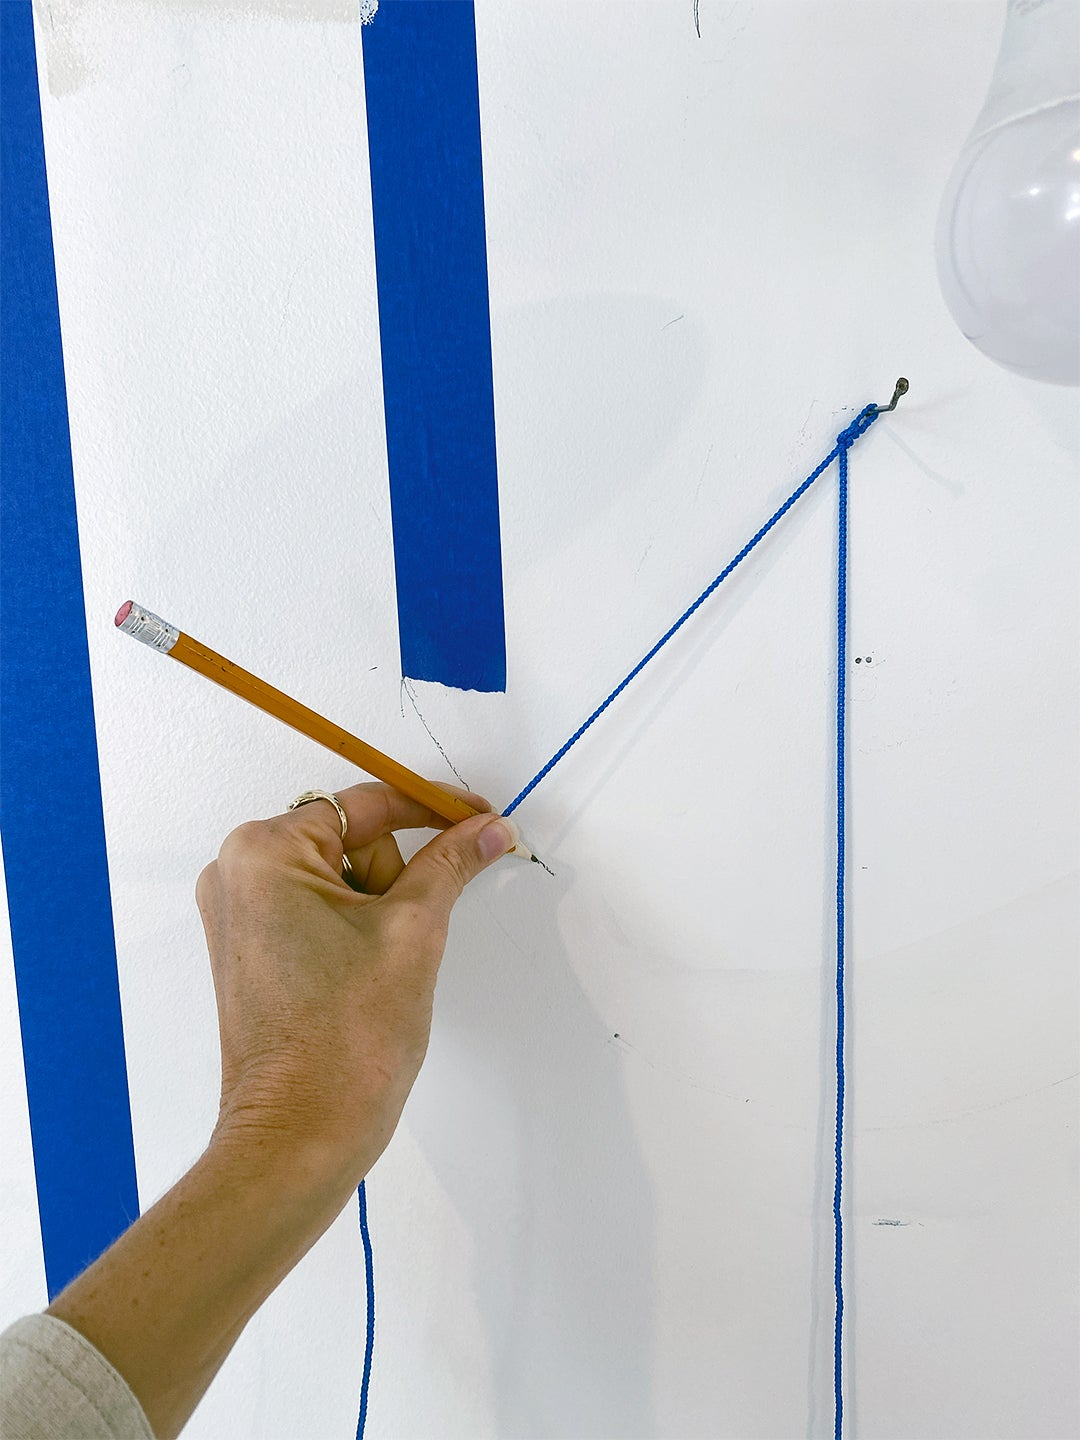 measuring with a pencil and string